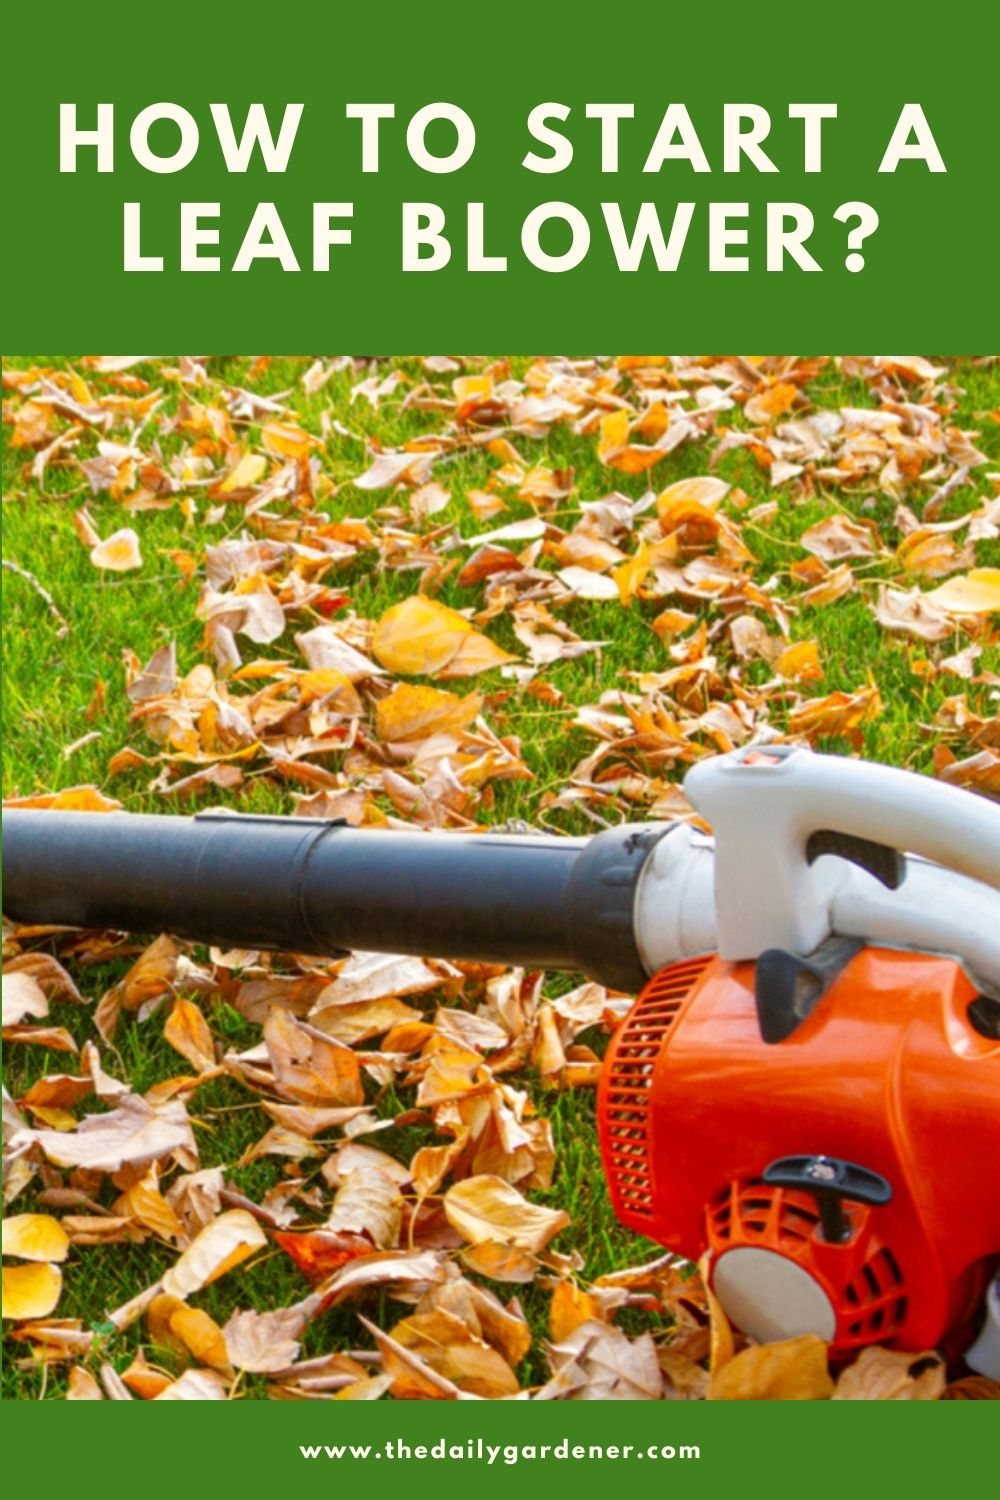 How to Start a Leaf Blower 1